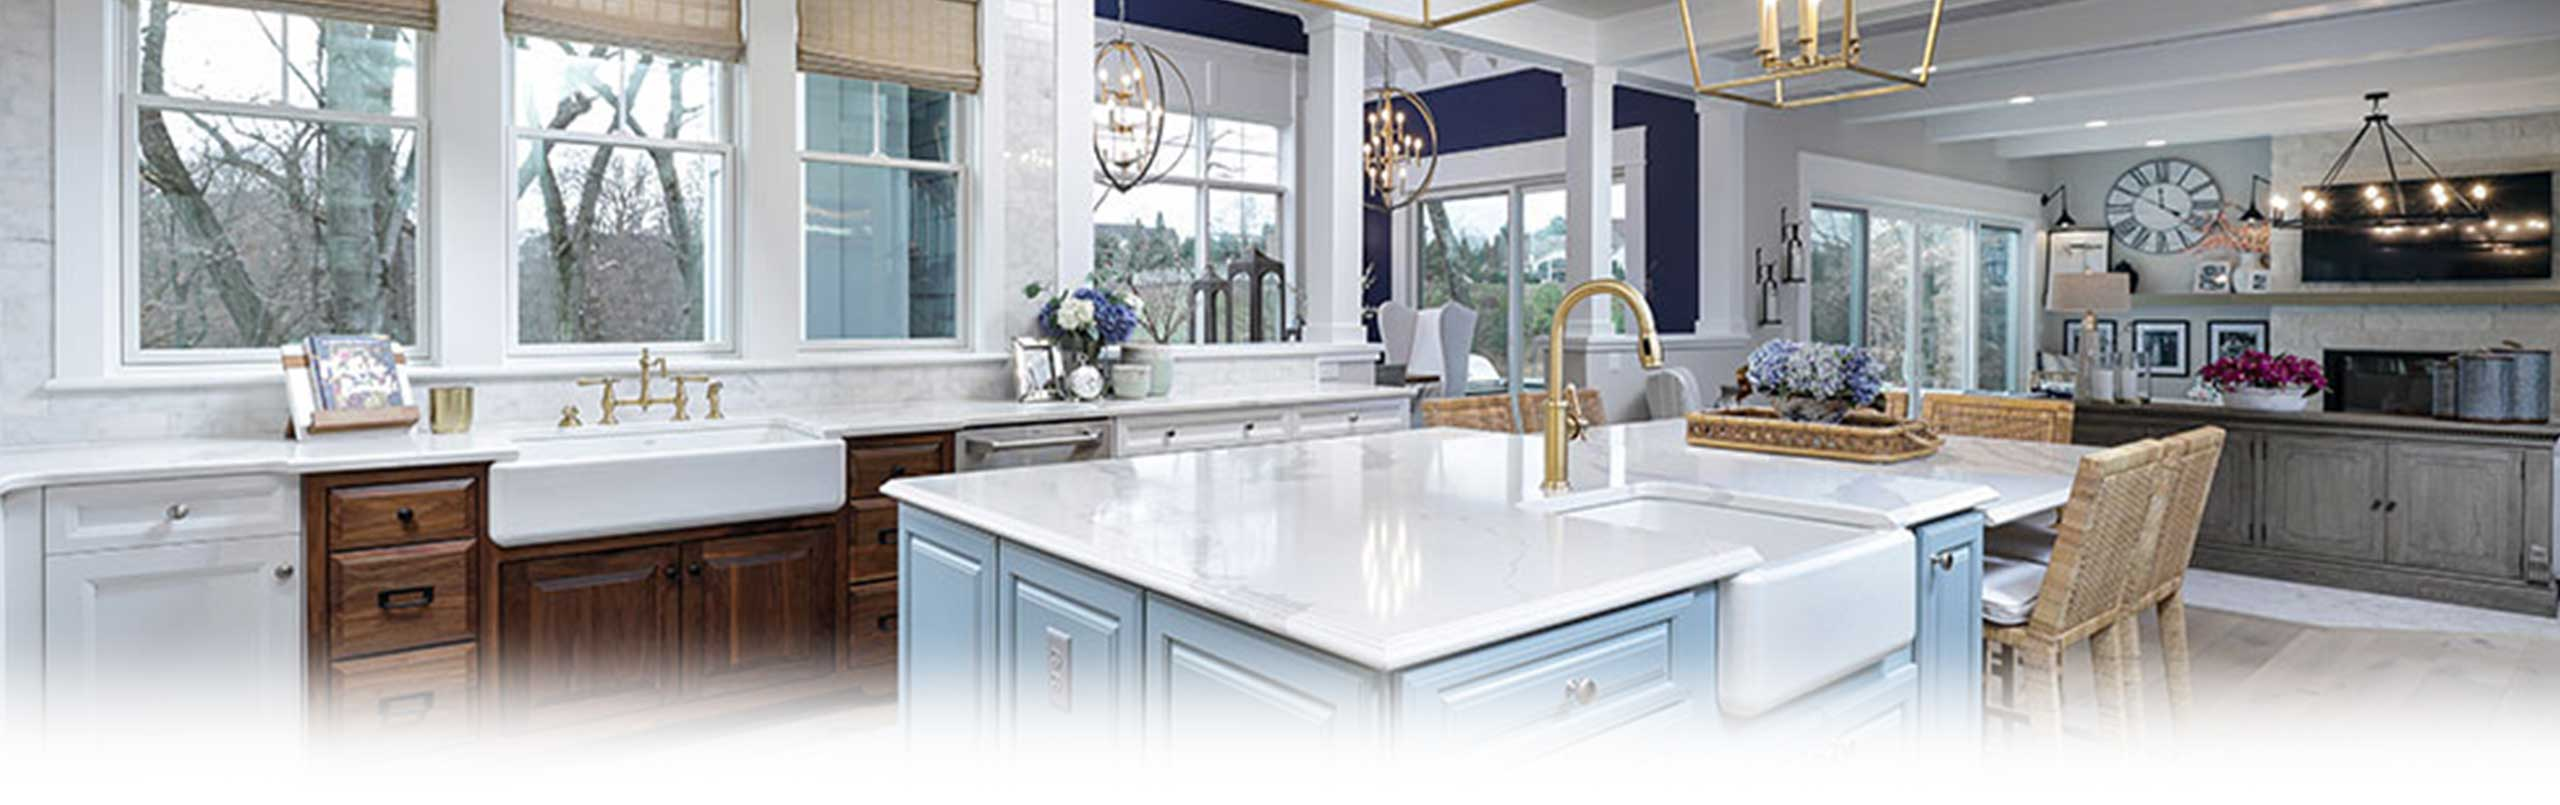 Barrington Homes Awarded Best of Design: New Kitchen by Pittsburgh Magazine